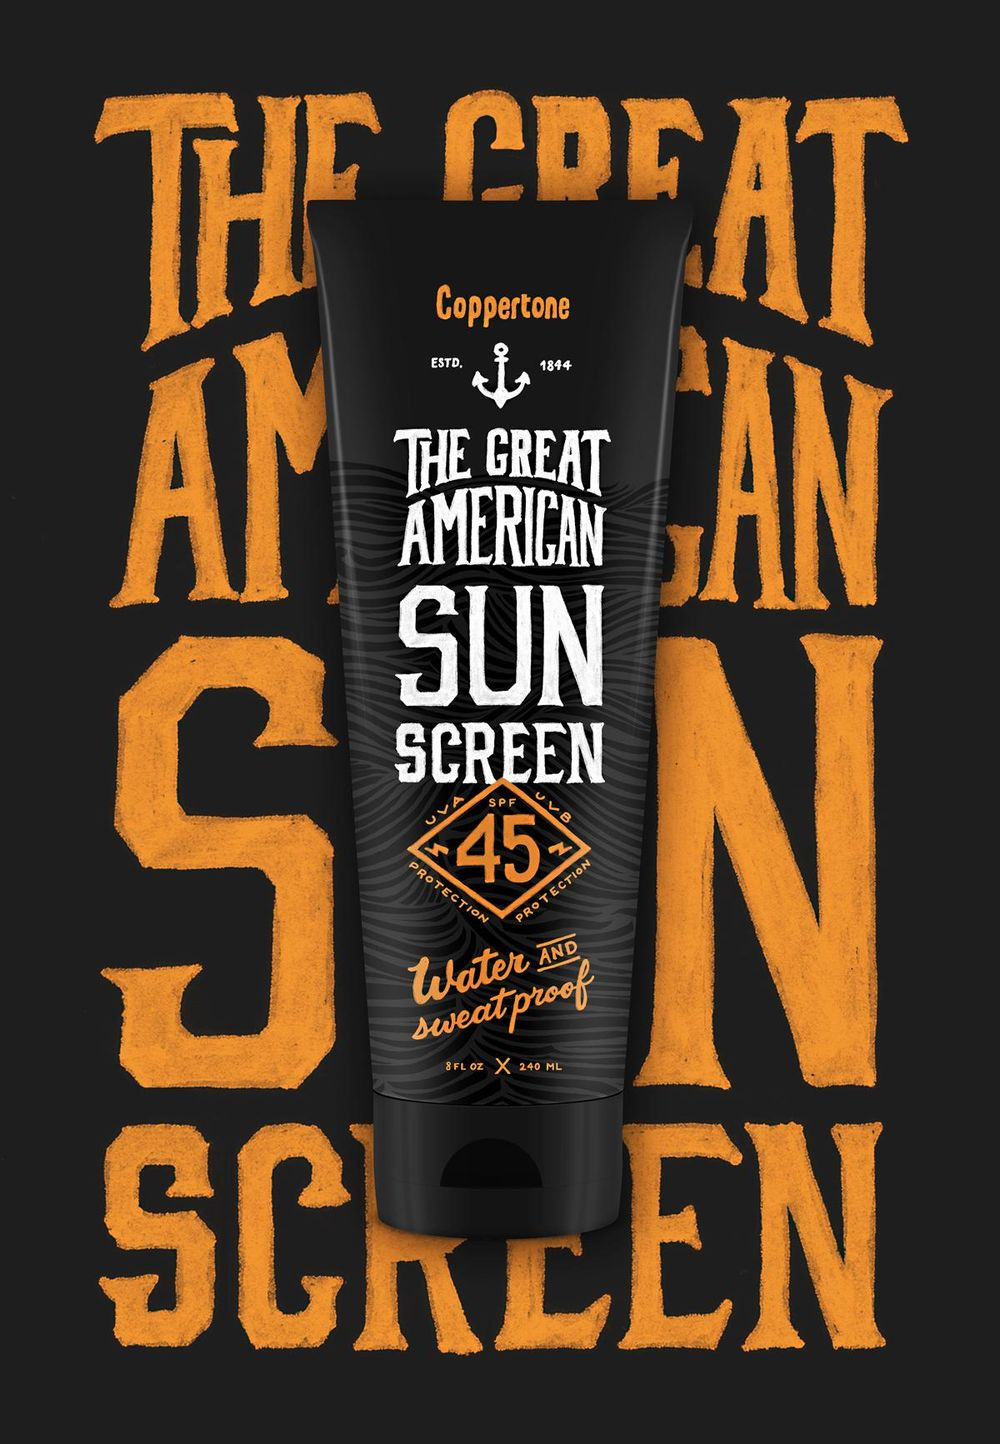 Sunscreen Label  - image 6 - student project